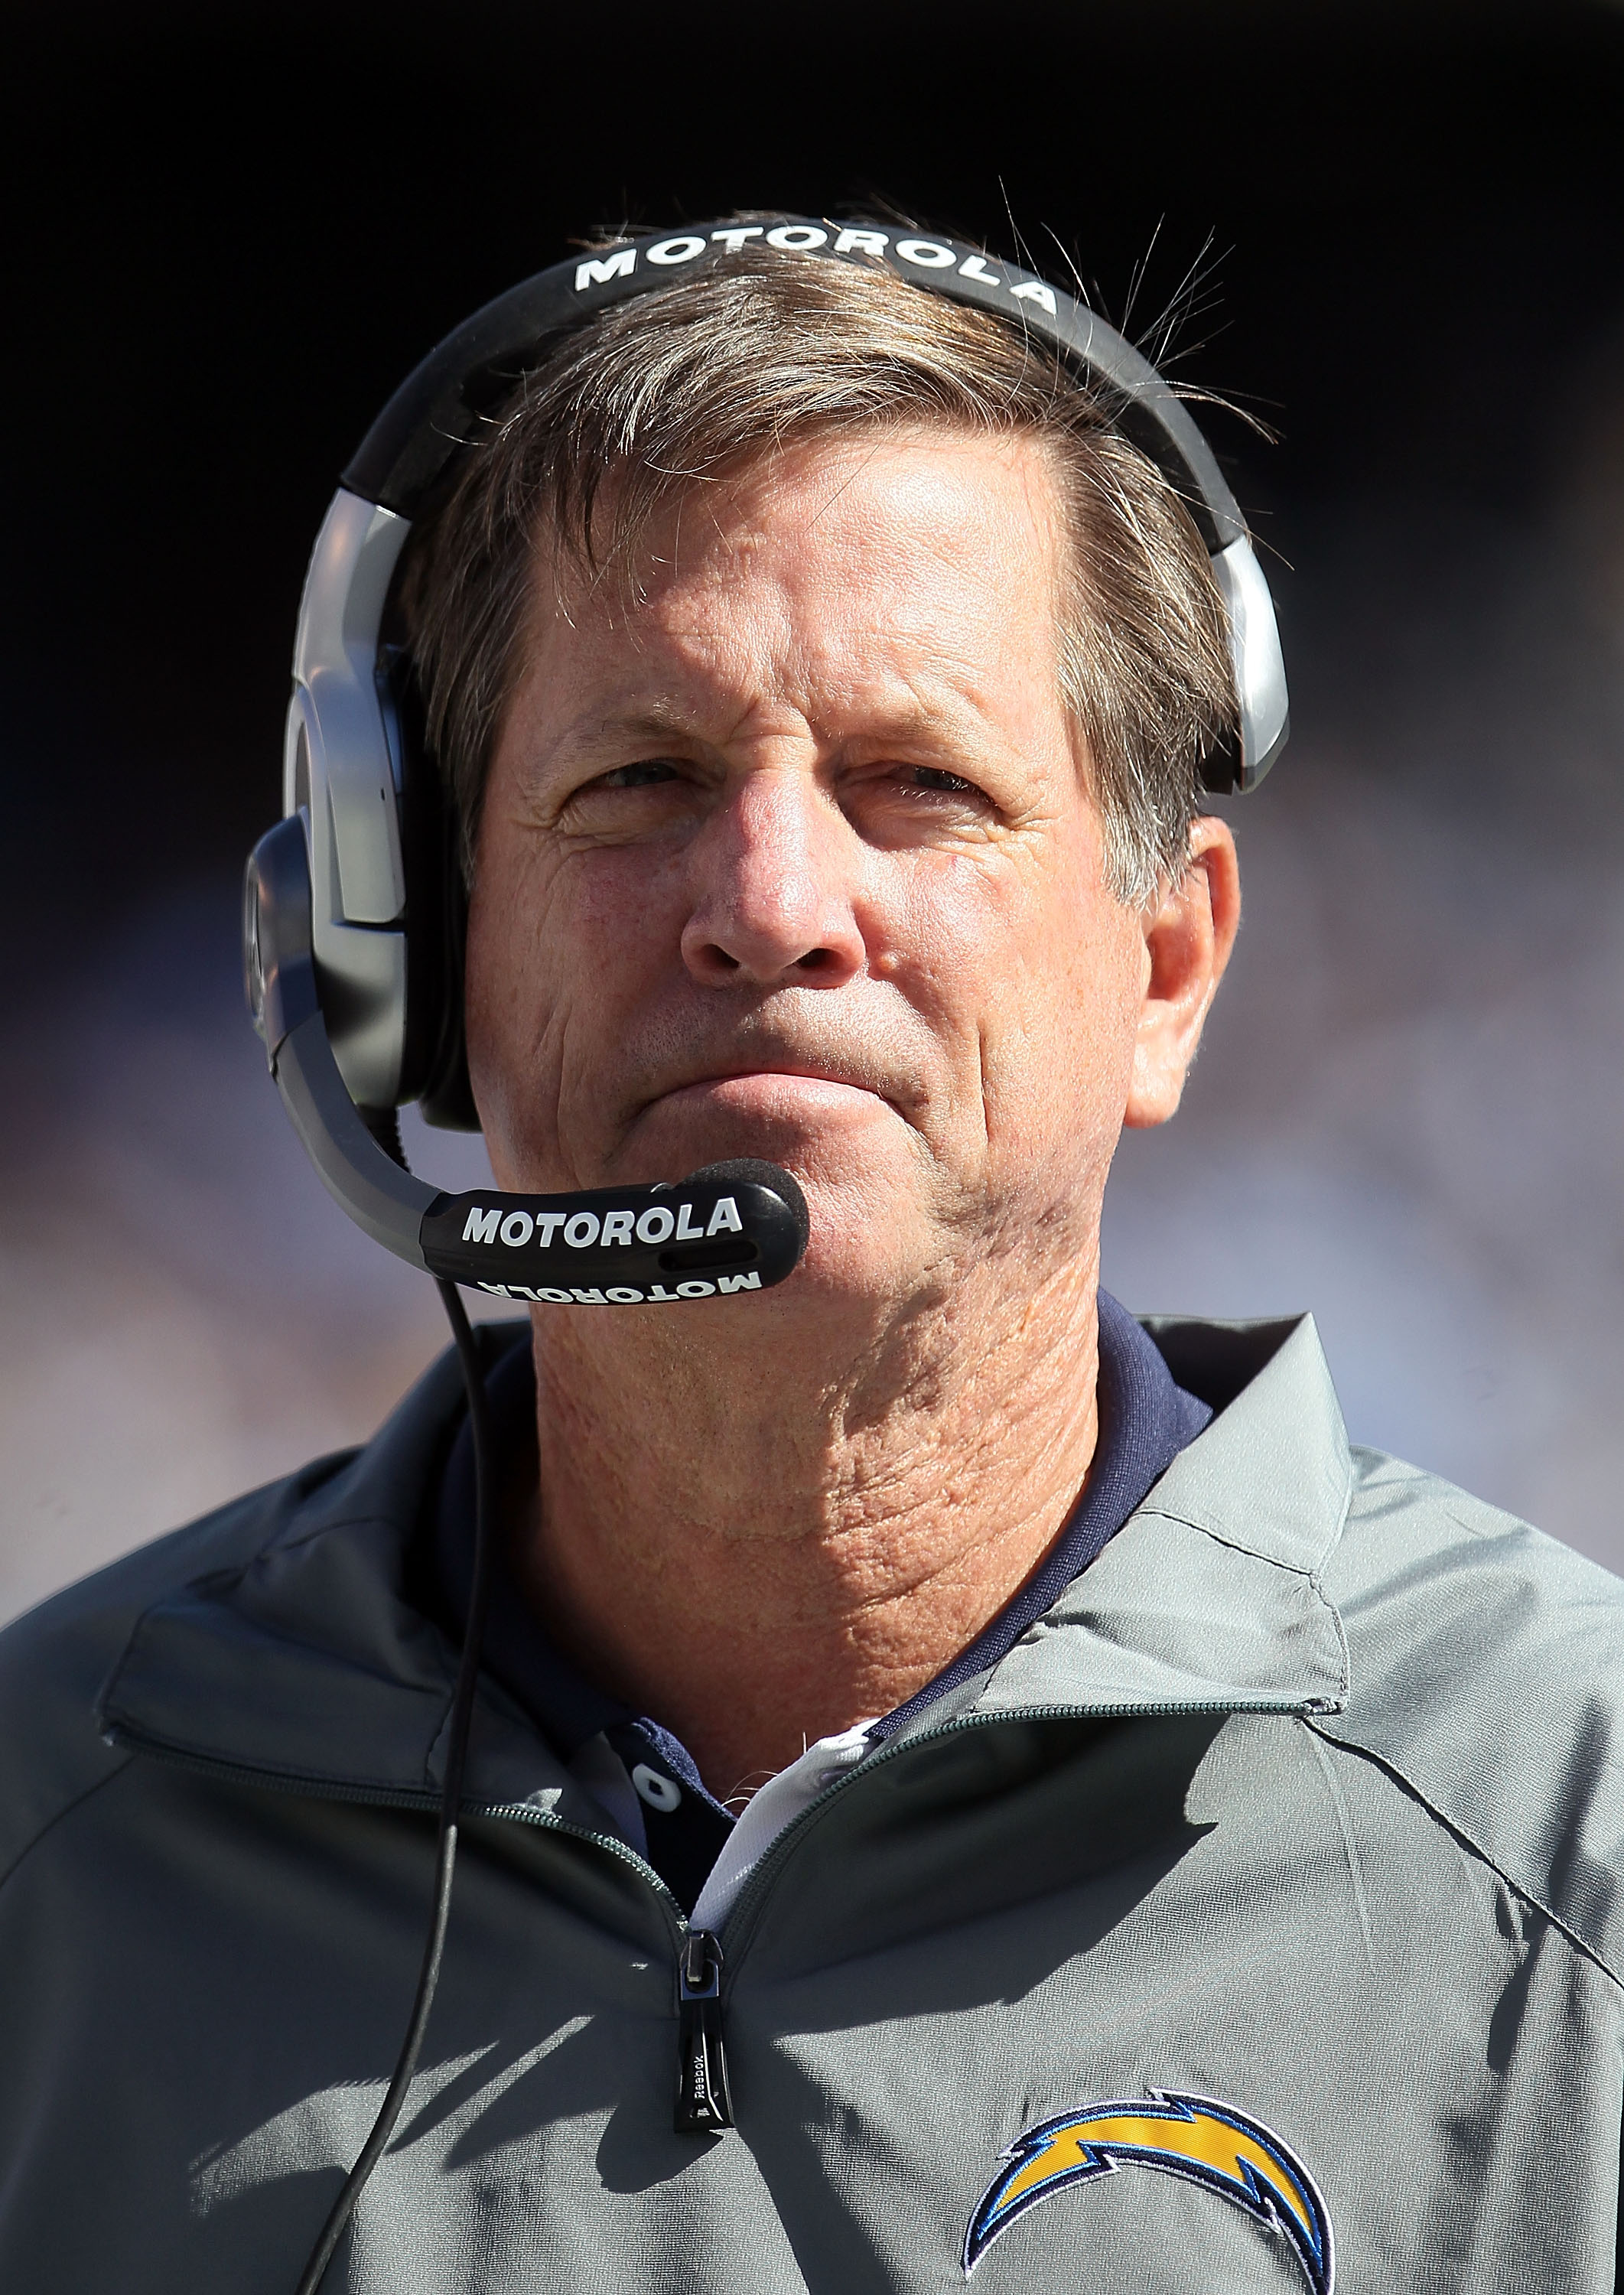 SAN DIEGO - OCTOBER 31:  San Diego Chargers head coach Norv Turner looks on from the sideline against the Tennessee Titans at Qualcomm Stadium on October 31, 2010 in San Diego, California. The Chargers defeated the Titans 33-25.  (Photo by Jeff Gross/Gett